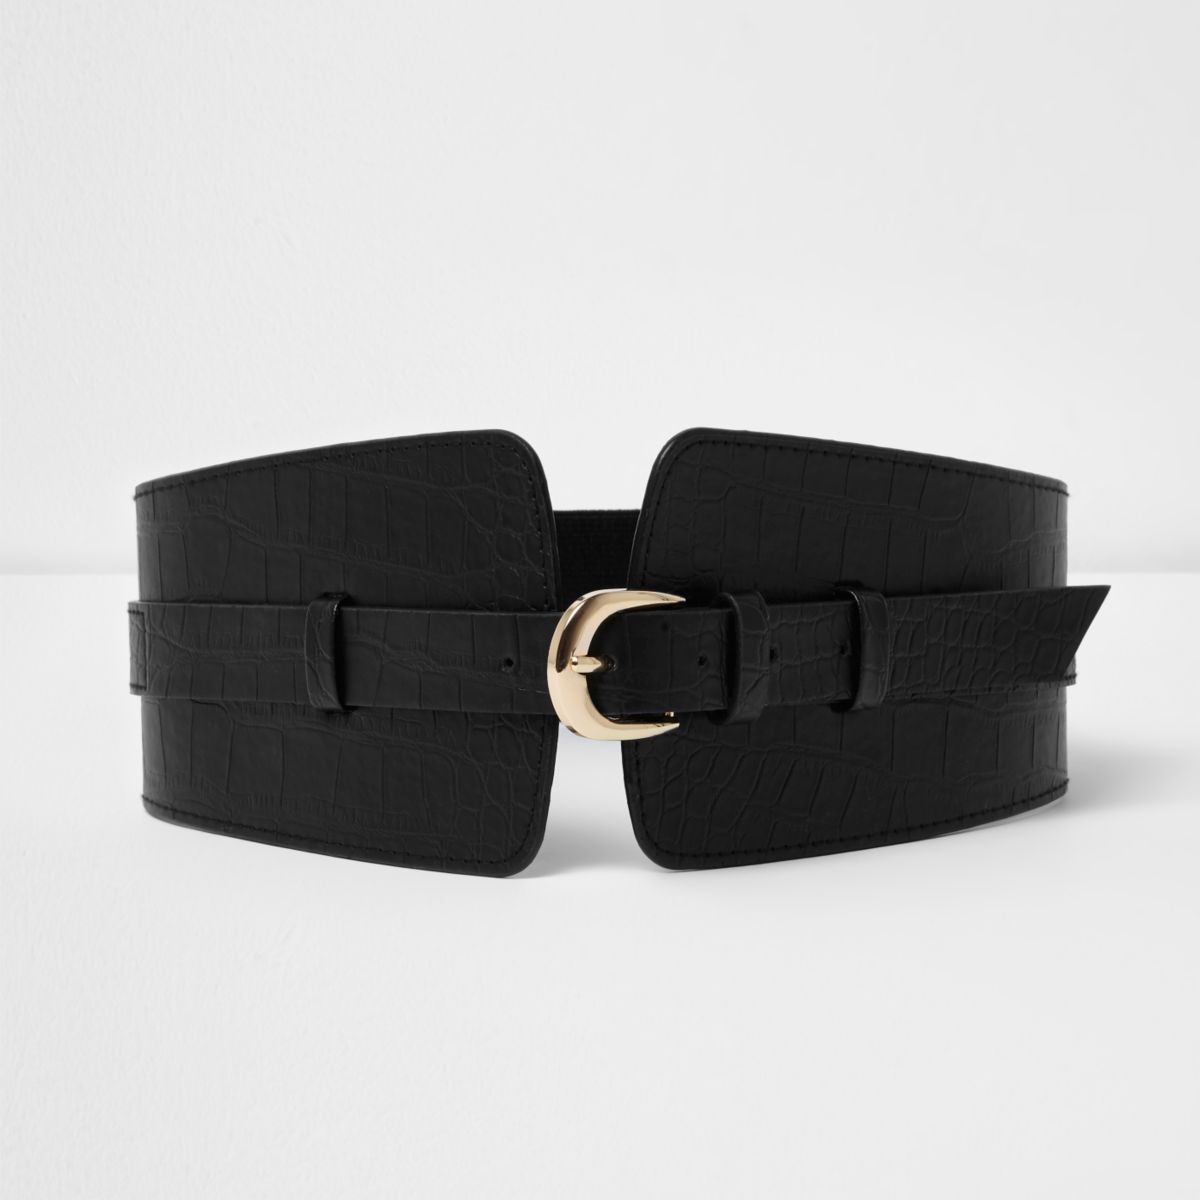 Black croc embossed wide waist belt